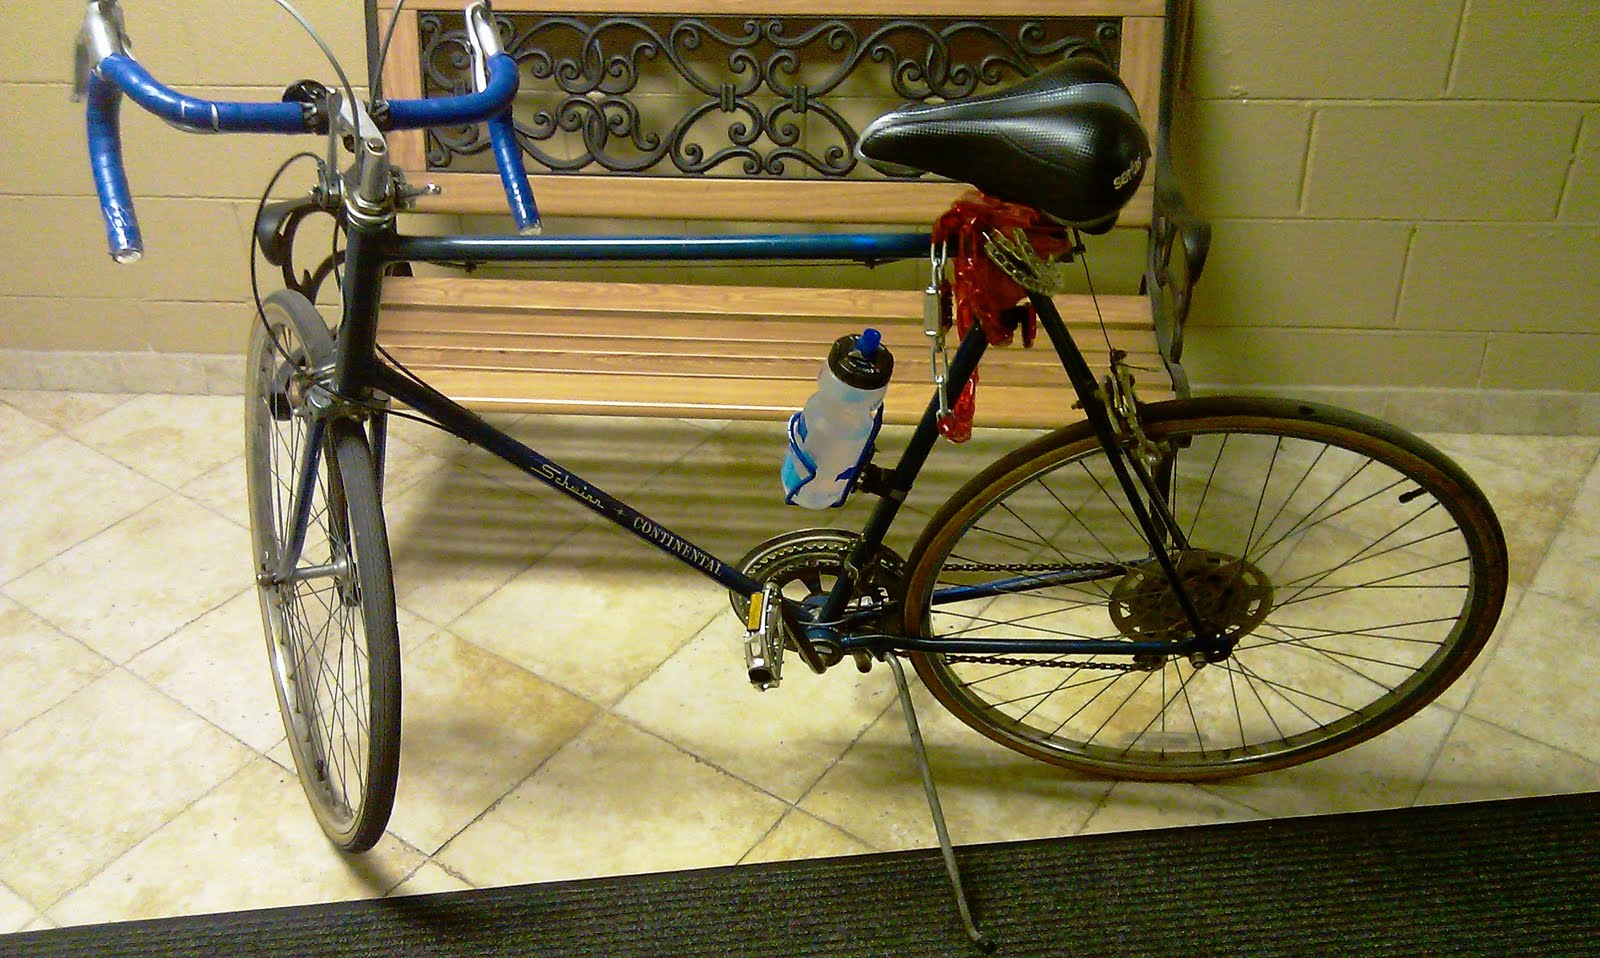 1975 Schwinn Continental Restoration Project: 1975 Schwinn